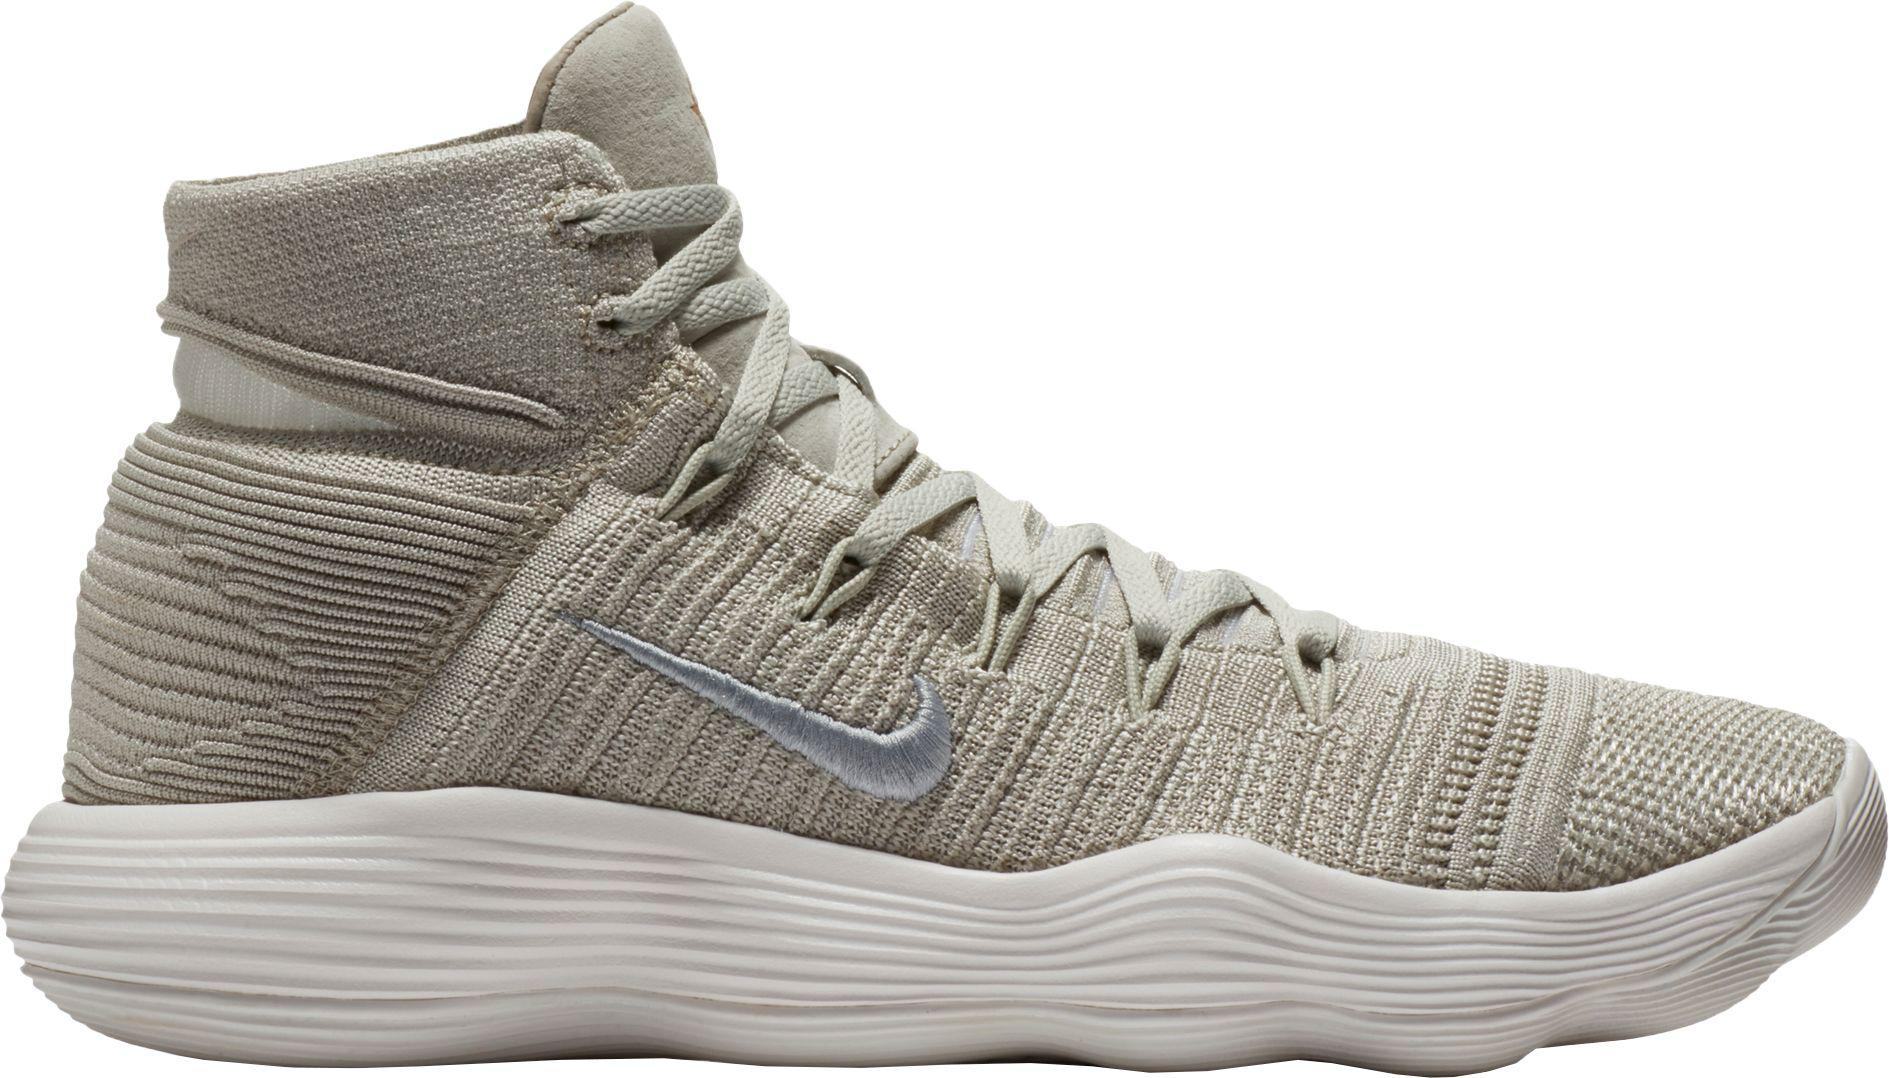 ccb47b6a359f43 ... Nike - Gray React Hyperdunk 2017 Flyknit Basketball Shoes for Men - Lyst  look good shoes ...